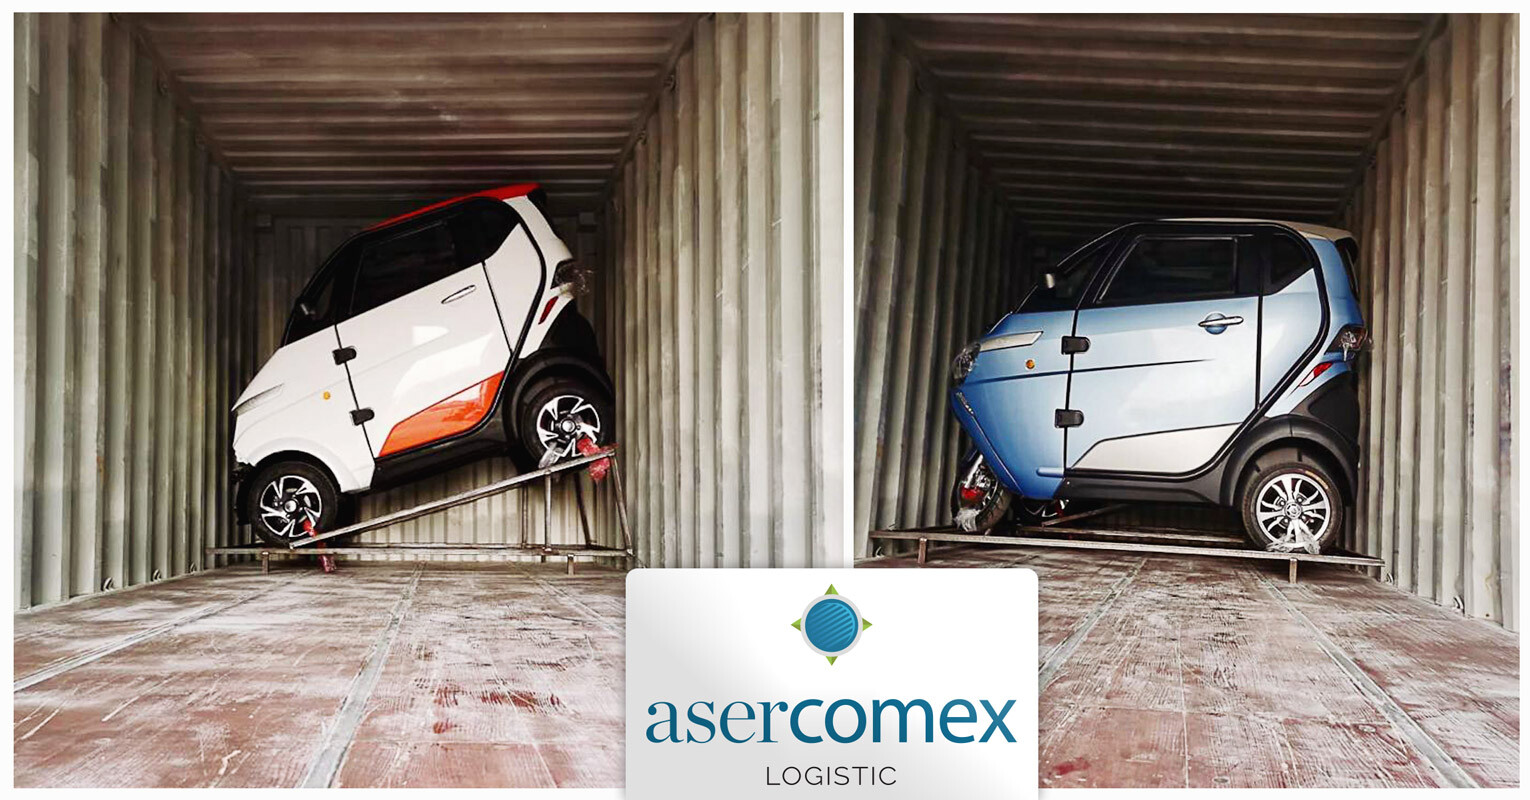 Asercomex is Handling New 100% Electric Cars for Europe